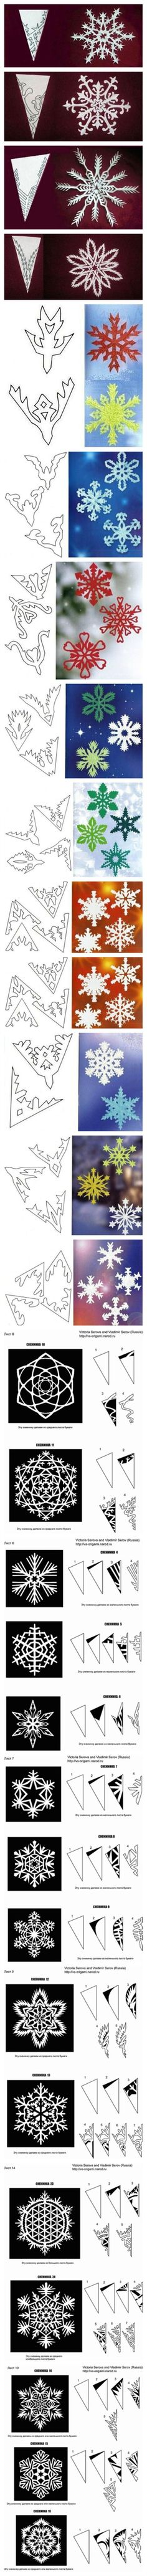 Patterns for paper snowflakes!!